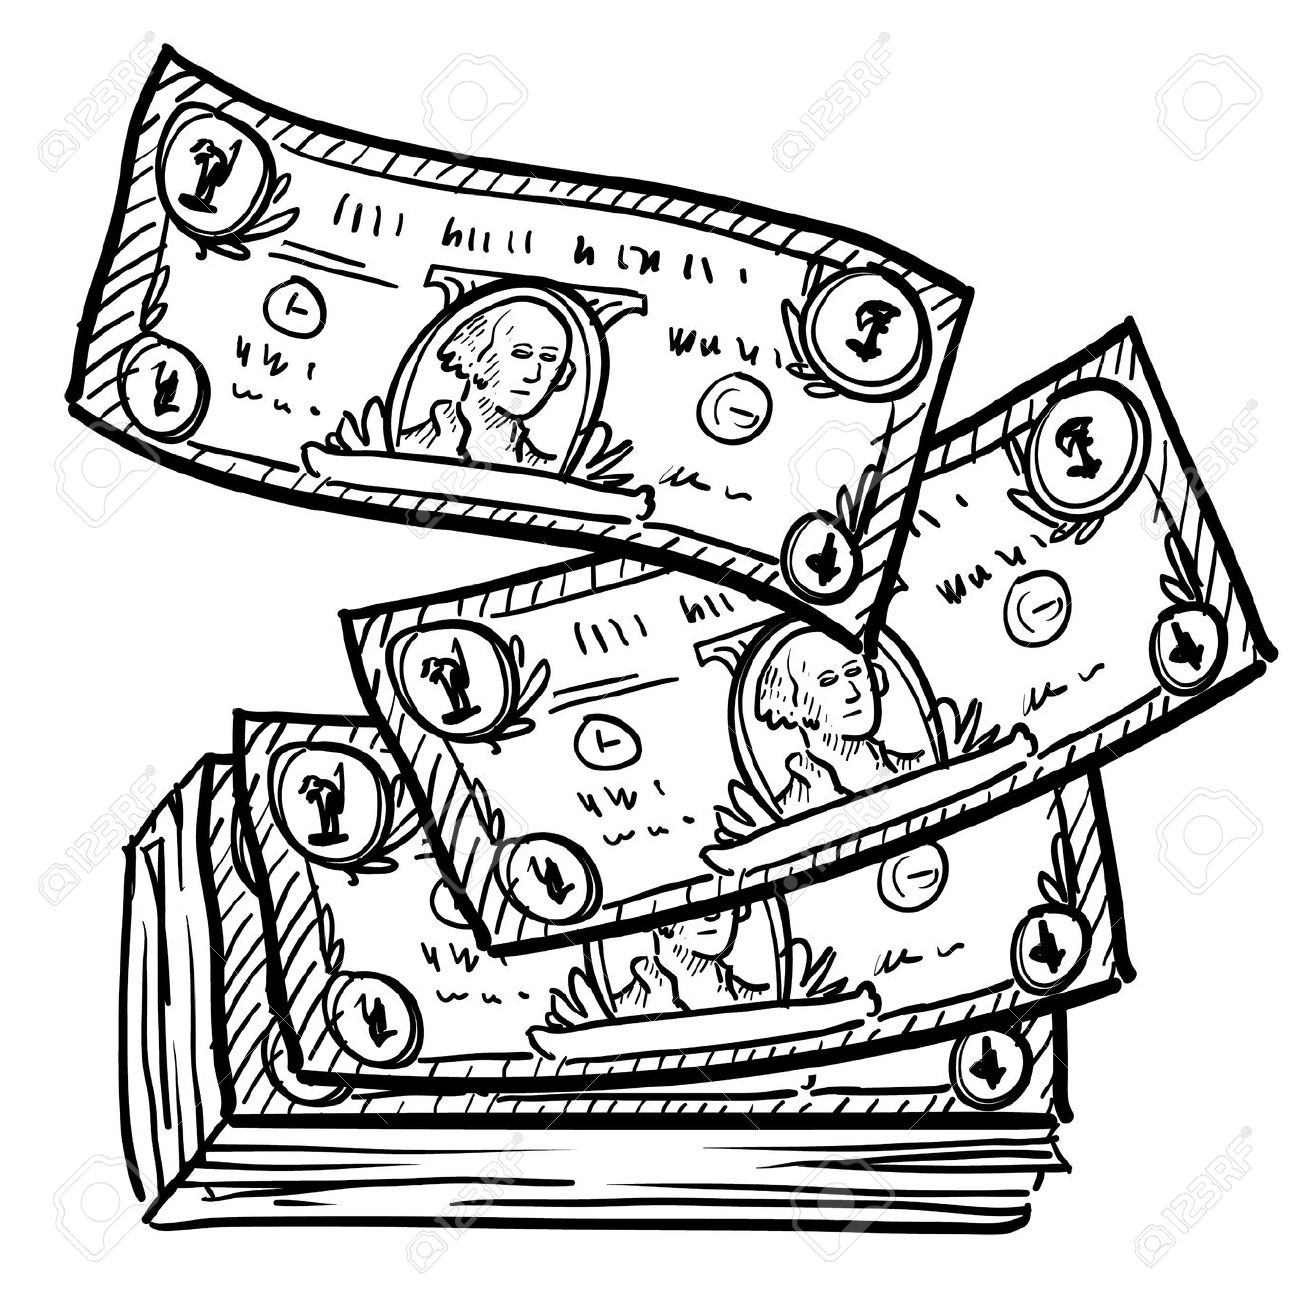 100 dollar bill clipart black and white